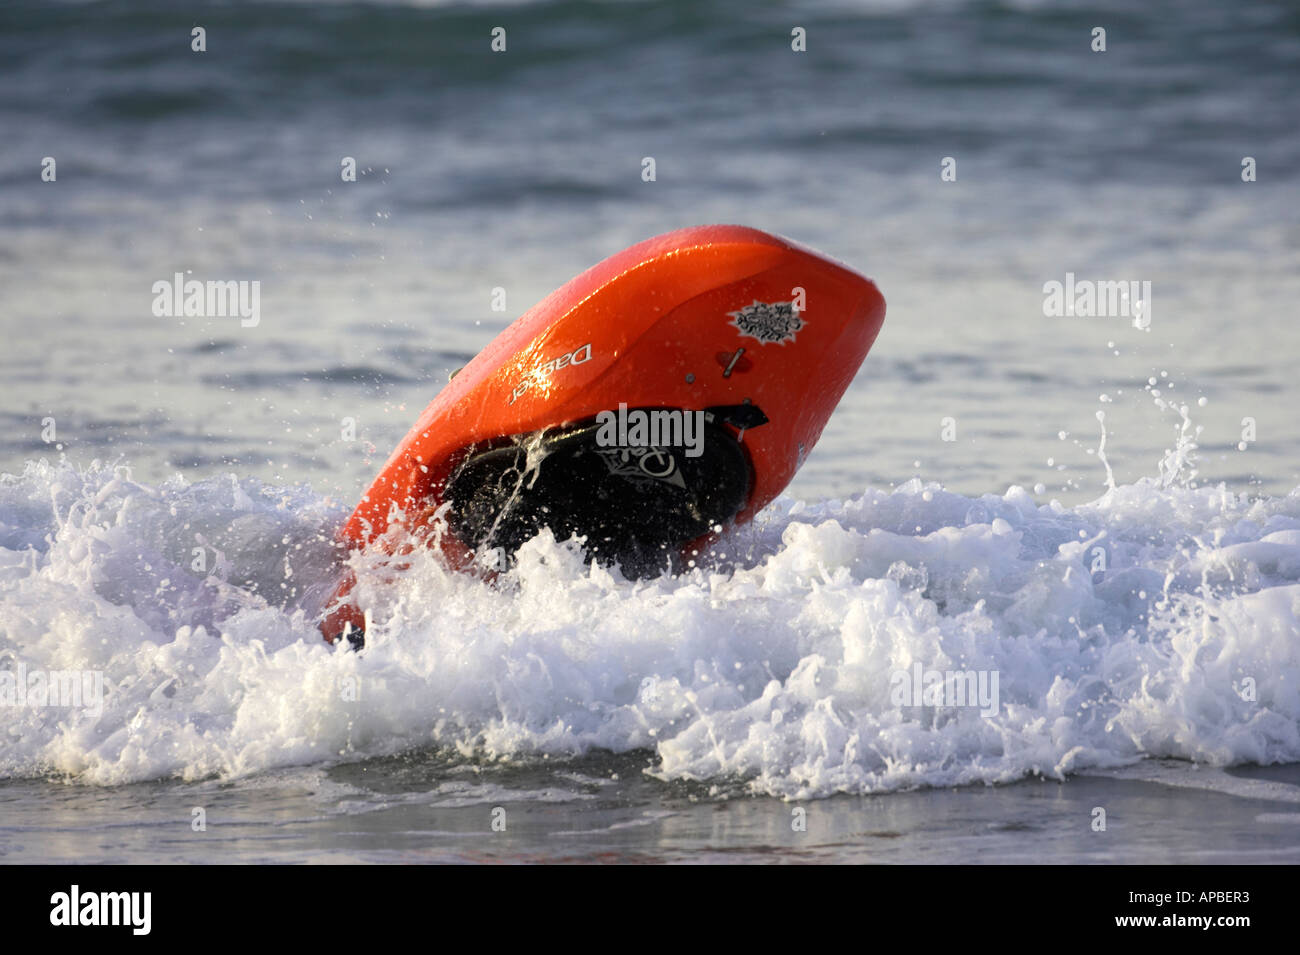 male kayaker capsized over turned in a wave in the sea off white rocks beach portrush county antrim northern ireland - Stock Image